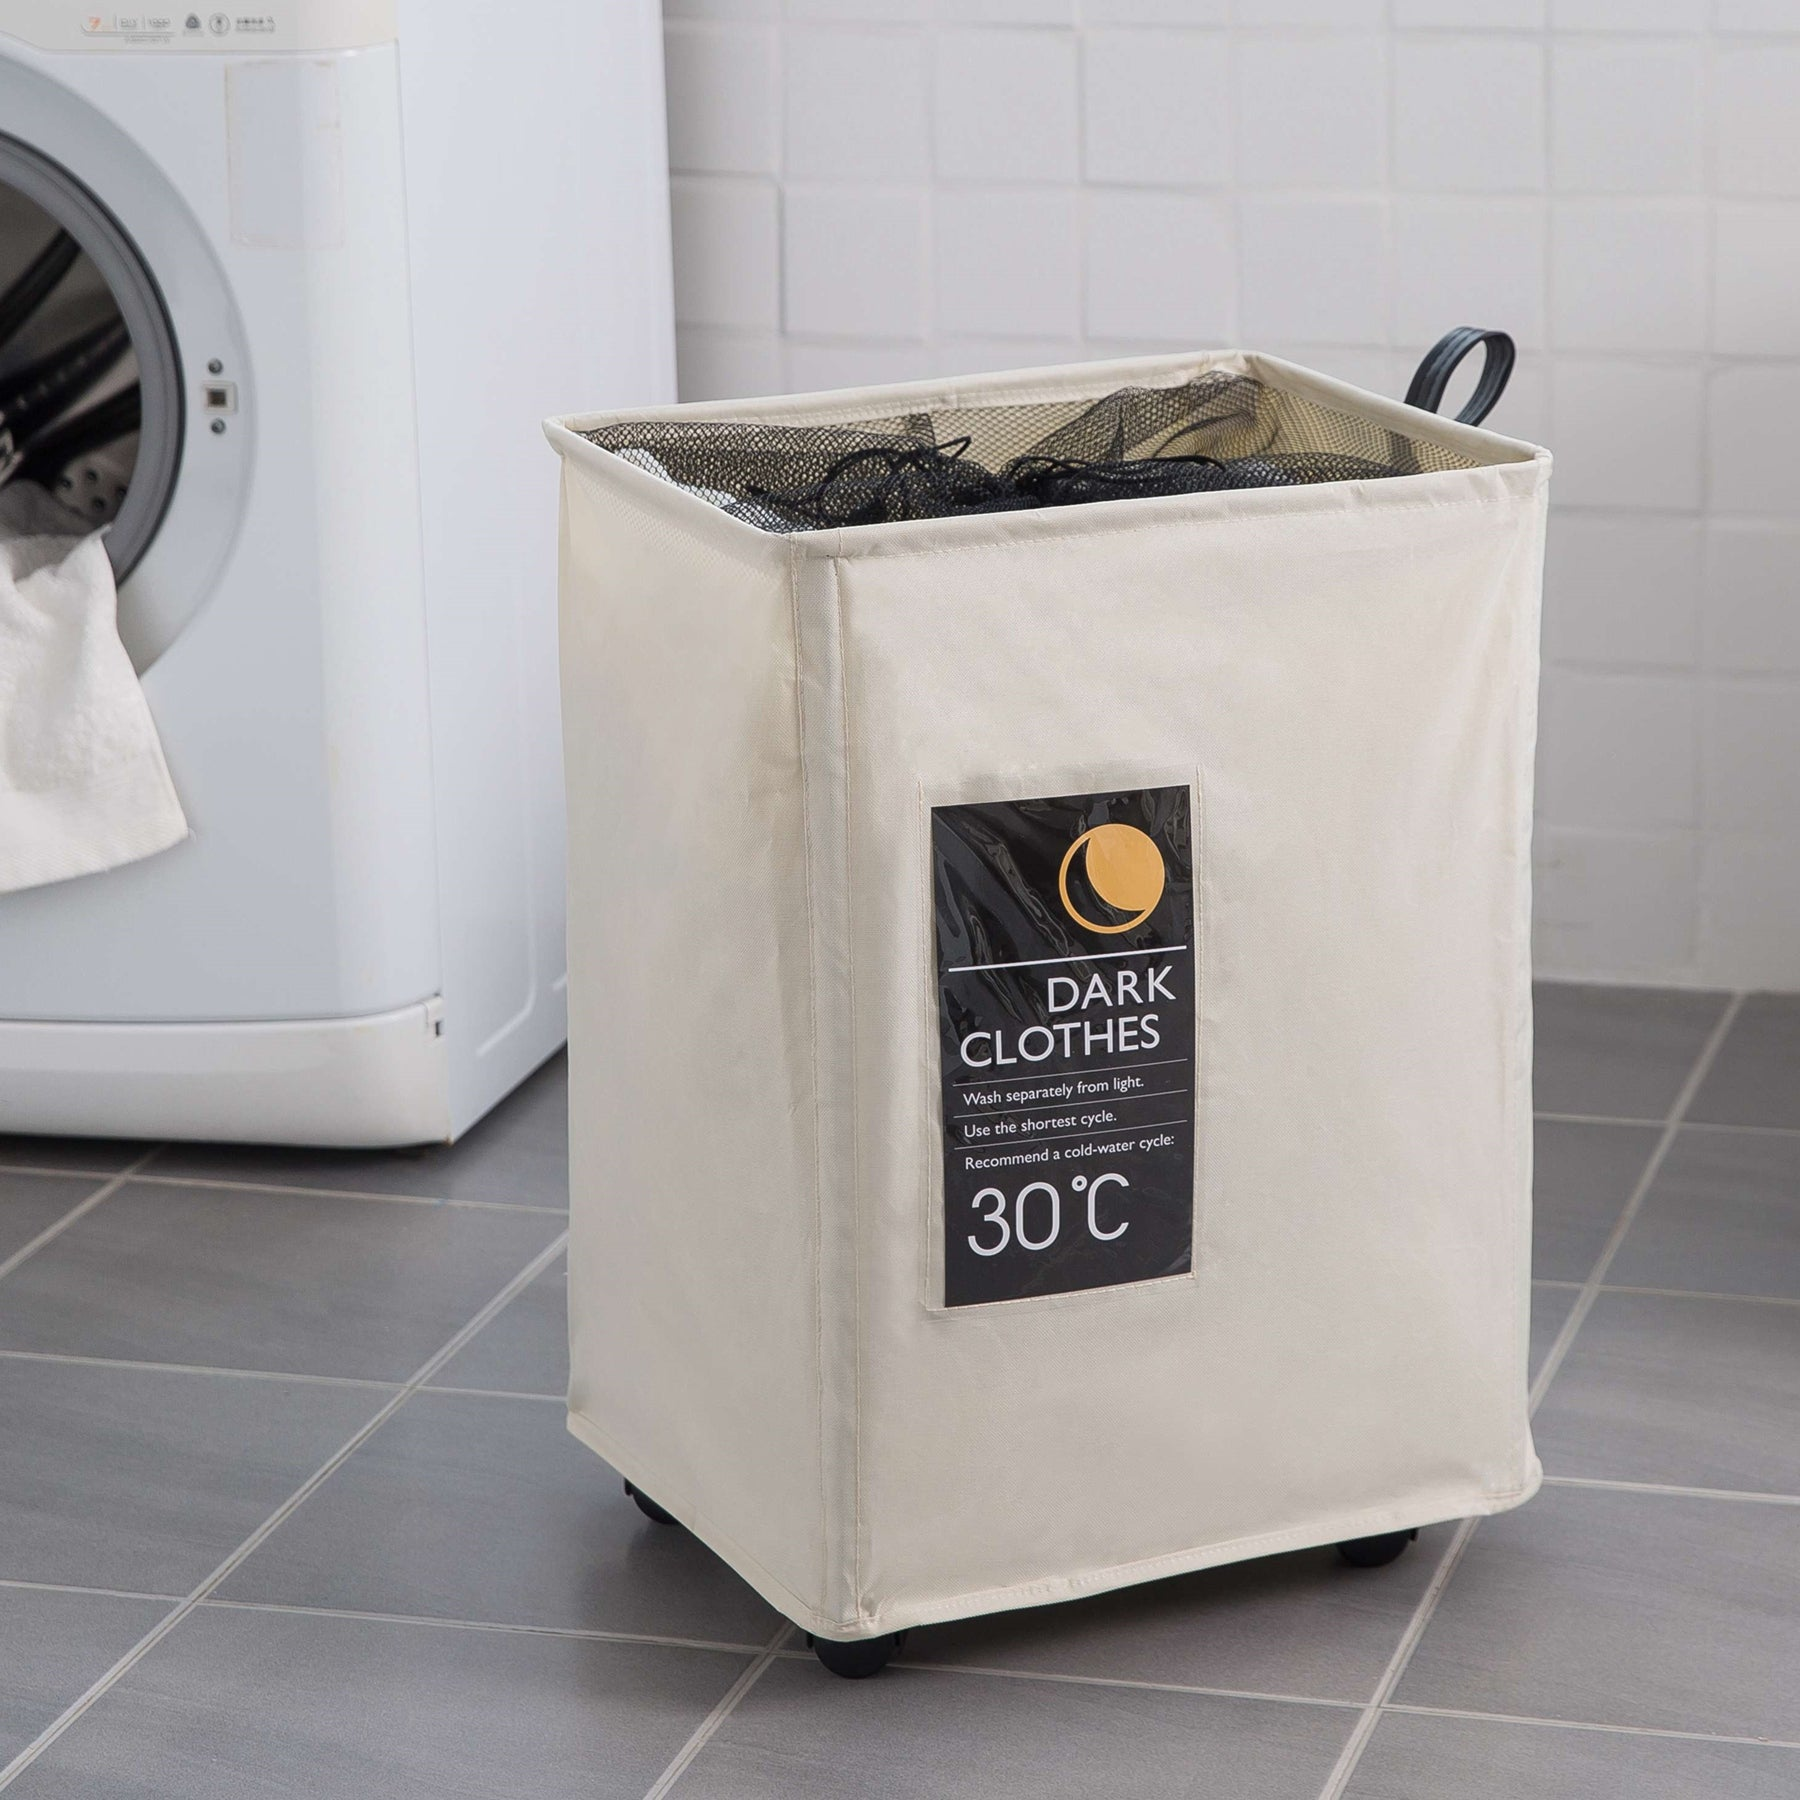 Nova Furniture Rolling Laundry Hamper With Wheels Waterproof Collapsible Laundry Basket Overstock 32366923